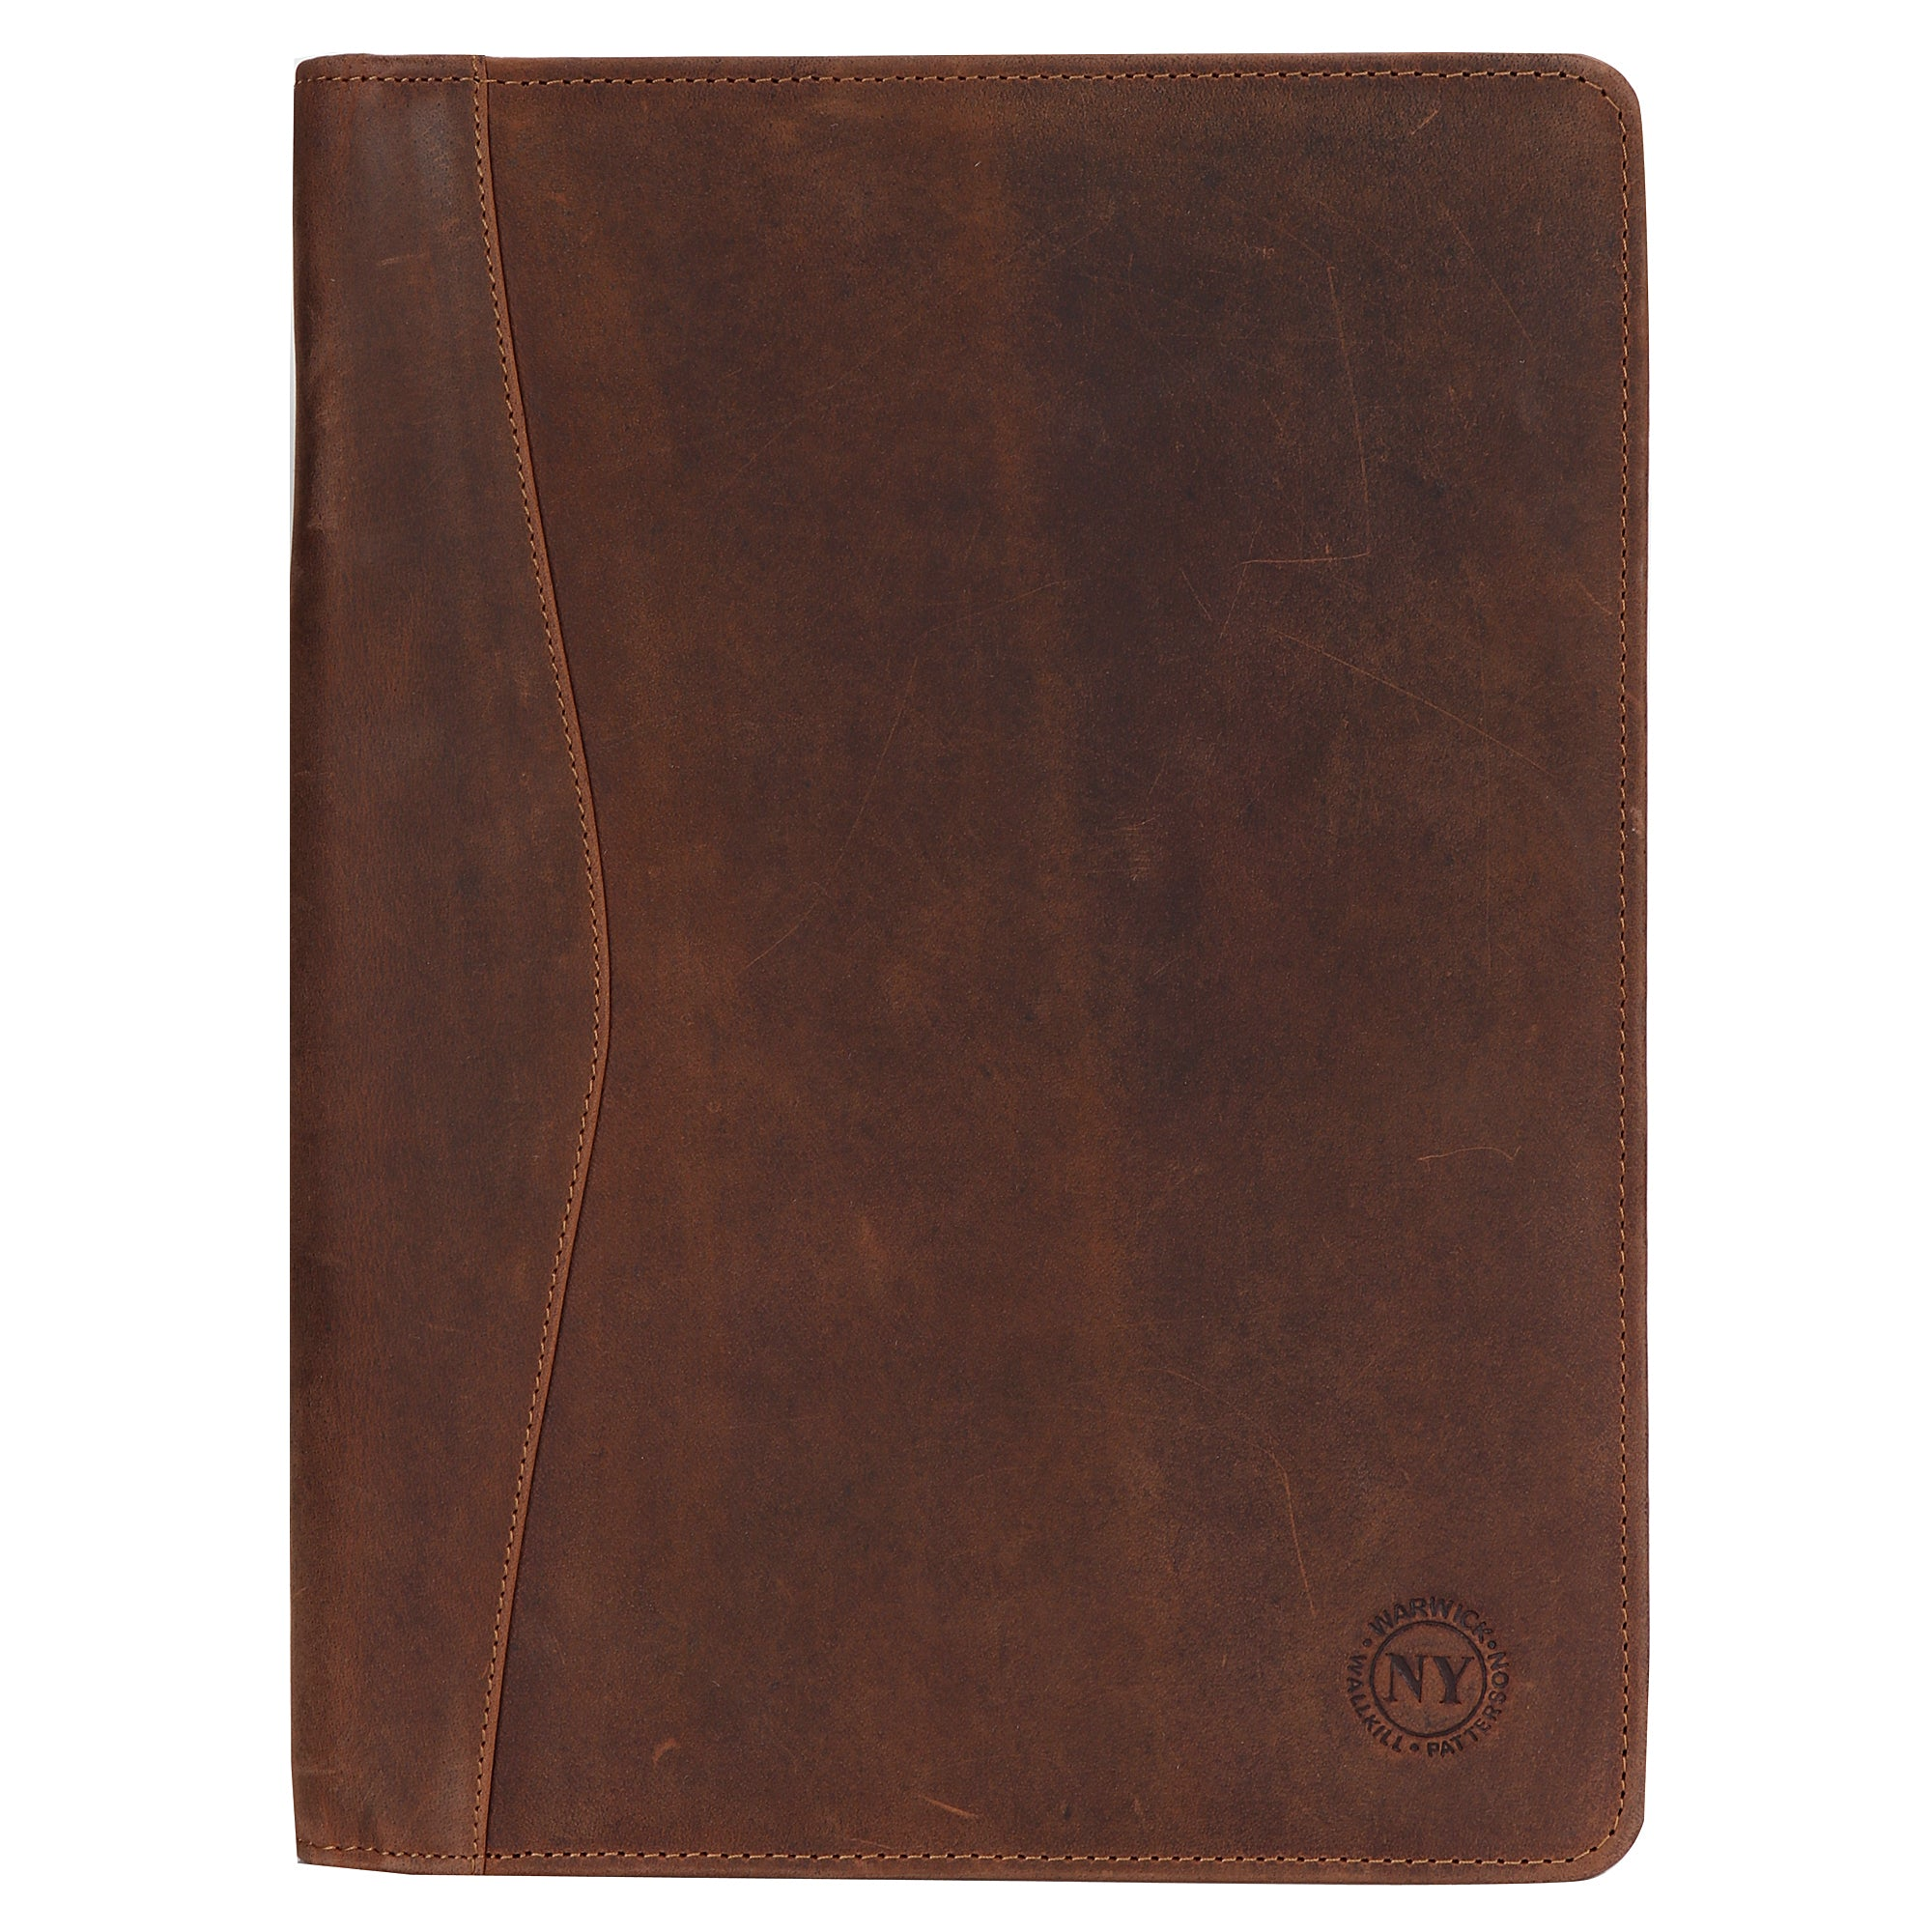 Supreme Business Portfolio Professional Organizer for Men & Women Durable Leather Padfolio (Tan)